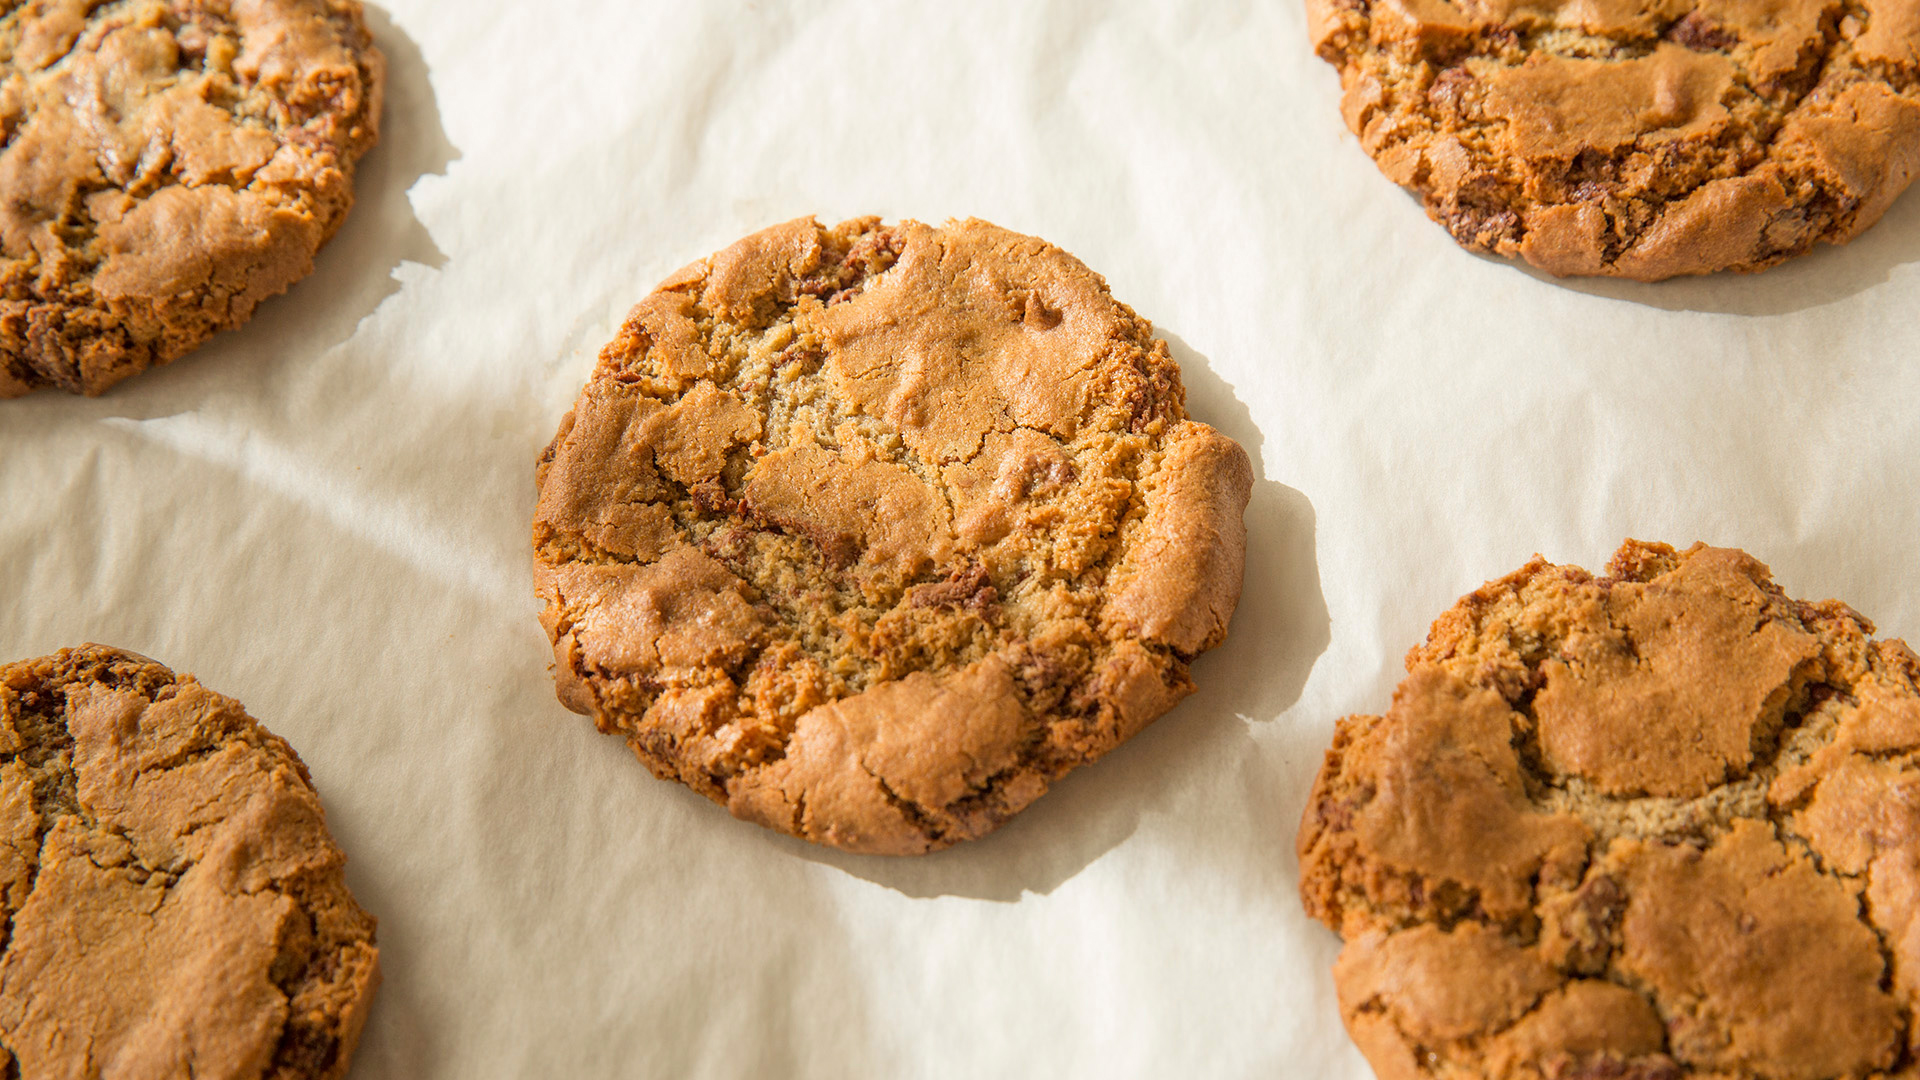 Video: How to Make Amazingly Soft, Chewy, Gluten-Free Chocolate Chip Cookies